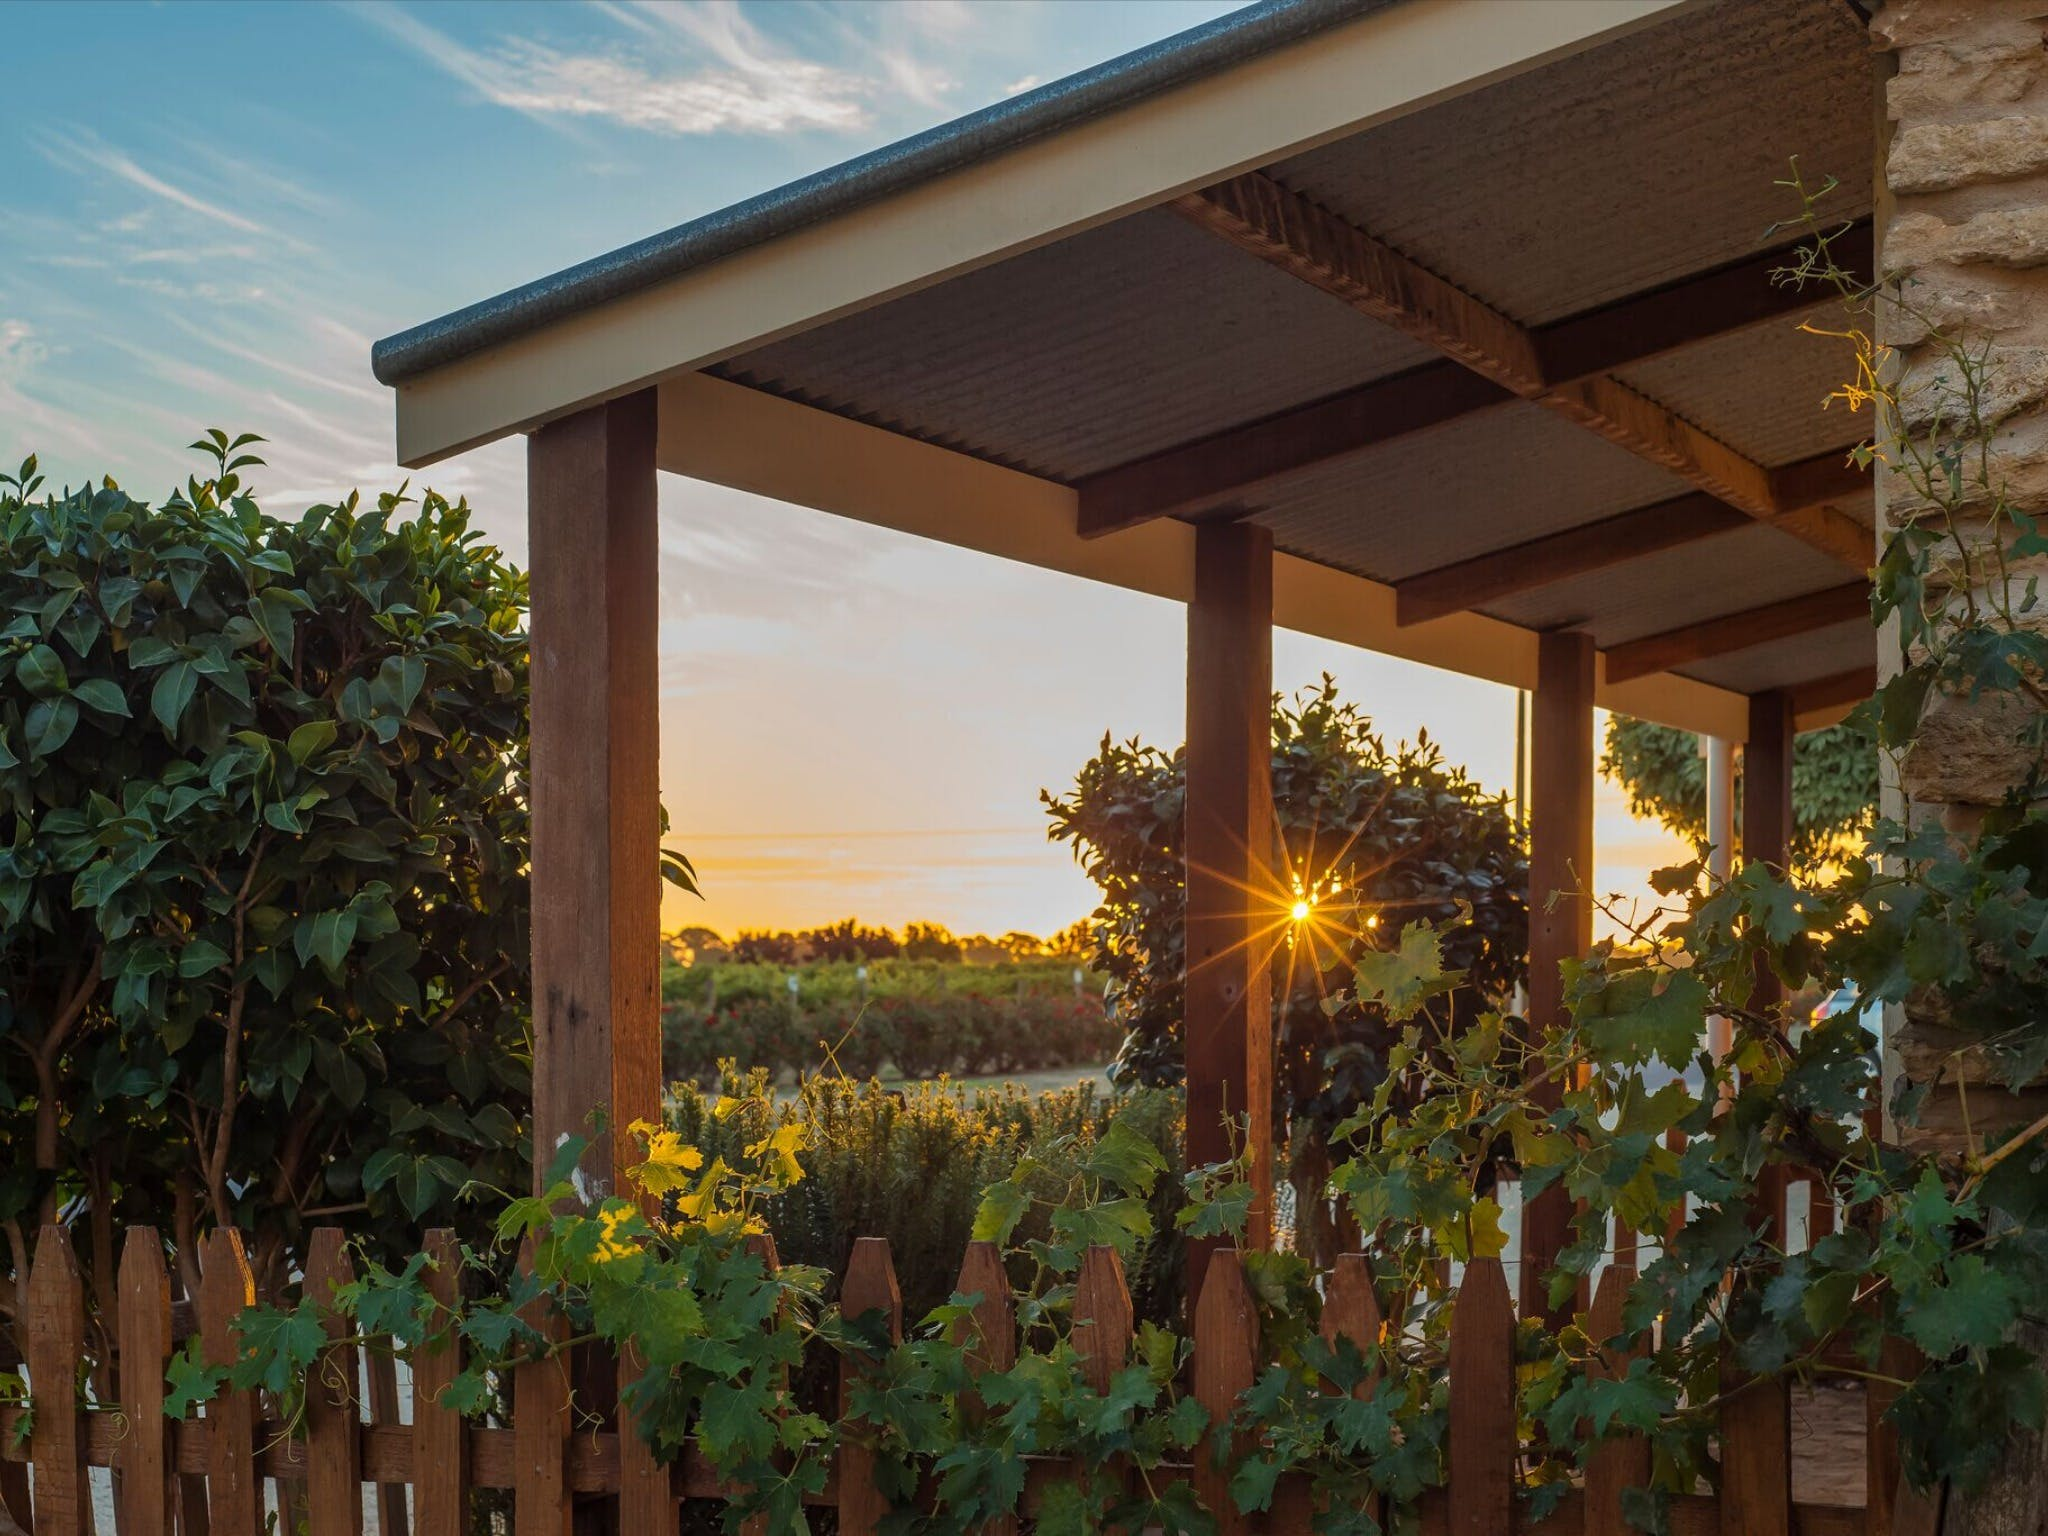 Caf in the Vines - Restaurants Sydney